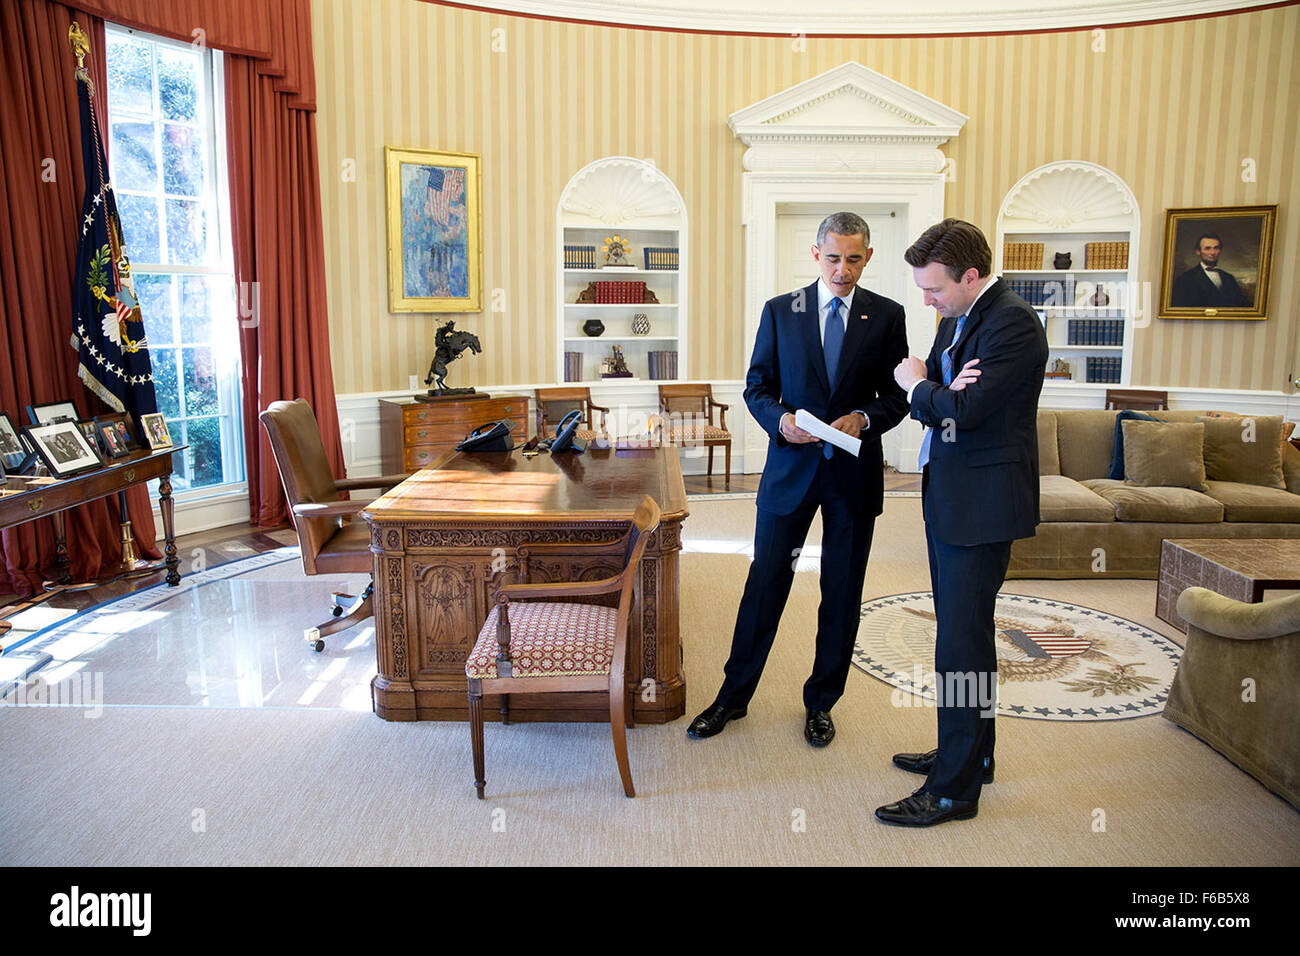 oval office july 2015. President Barack Obama Talks With Press Secretary Josh Earnest In The Oval Office, Feb. 3, 2015. Office July 2015 T